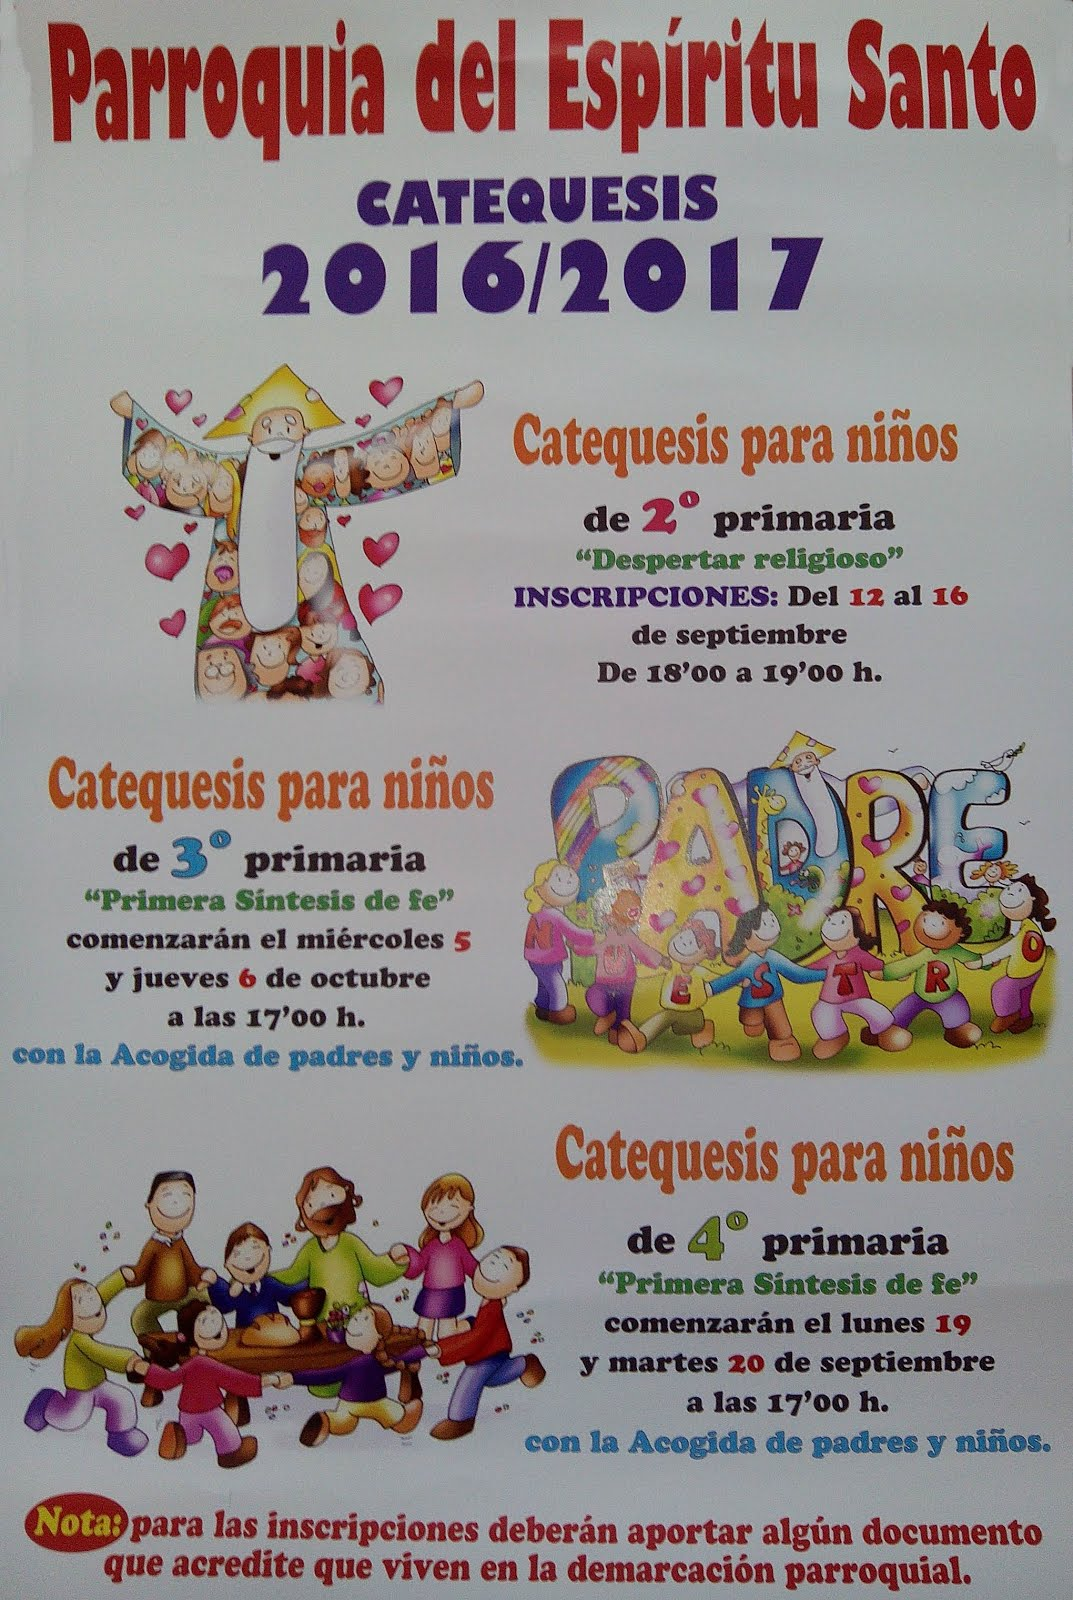 Catequesis infantiles 2016/17